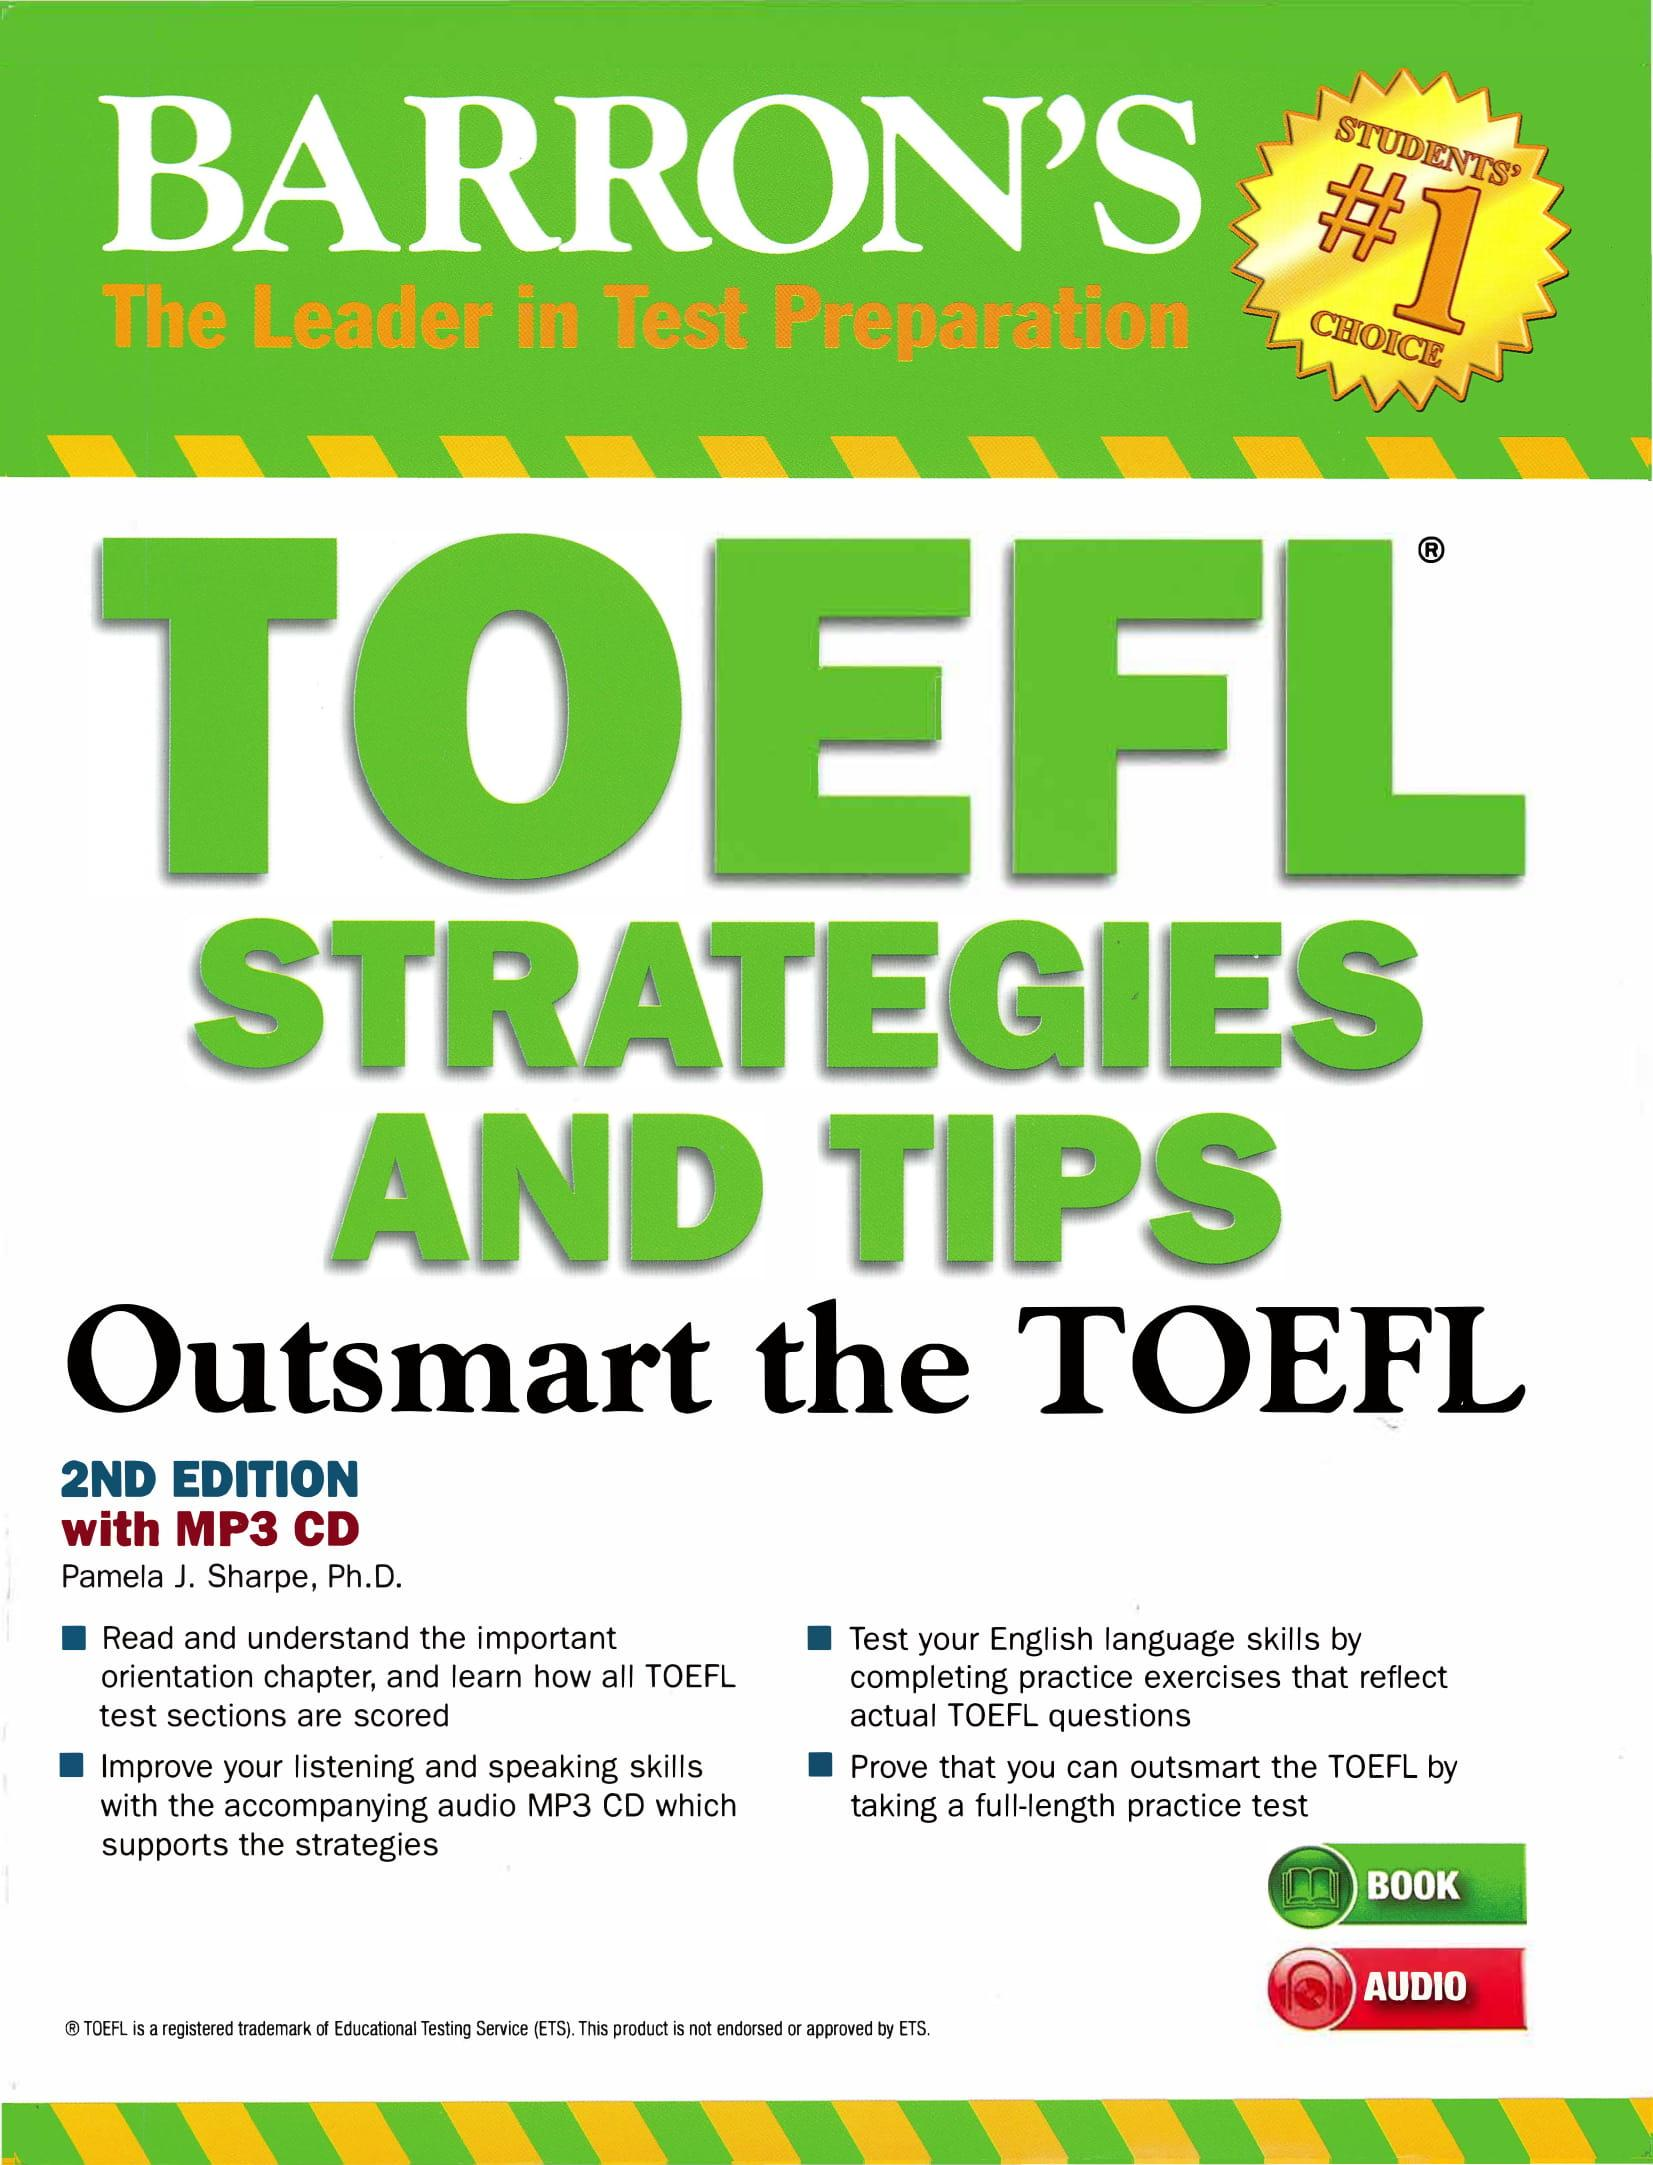 TOEFL Strategies and Tips with MP3 audios: Outsmart the TOEFL iBT Second Edition